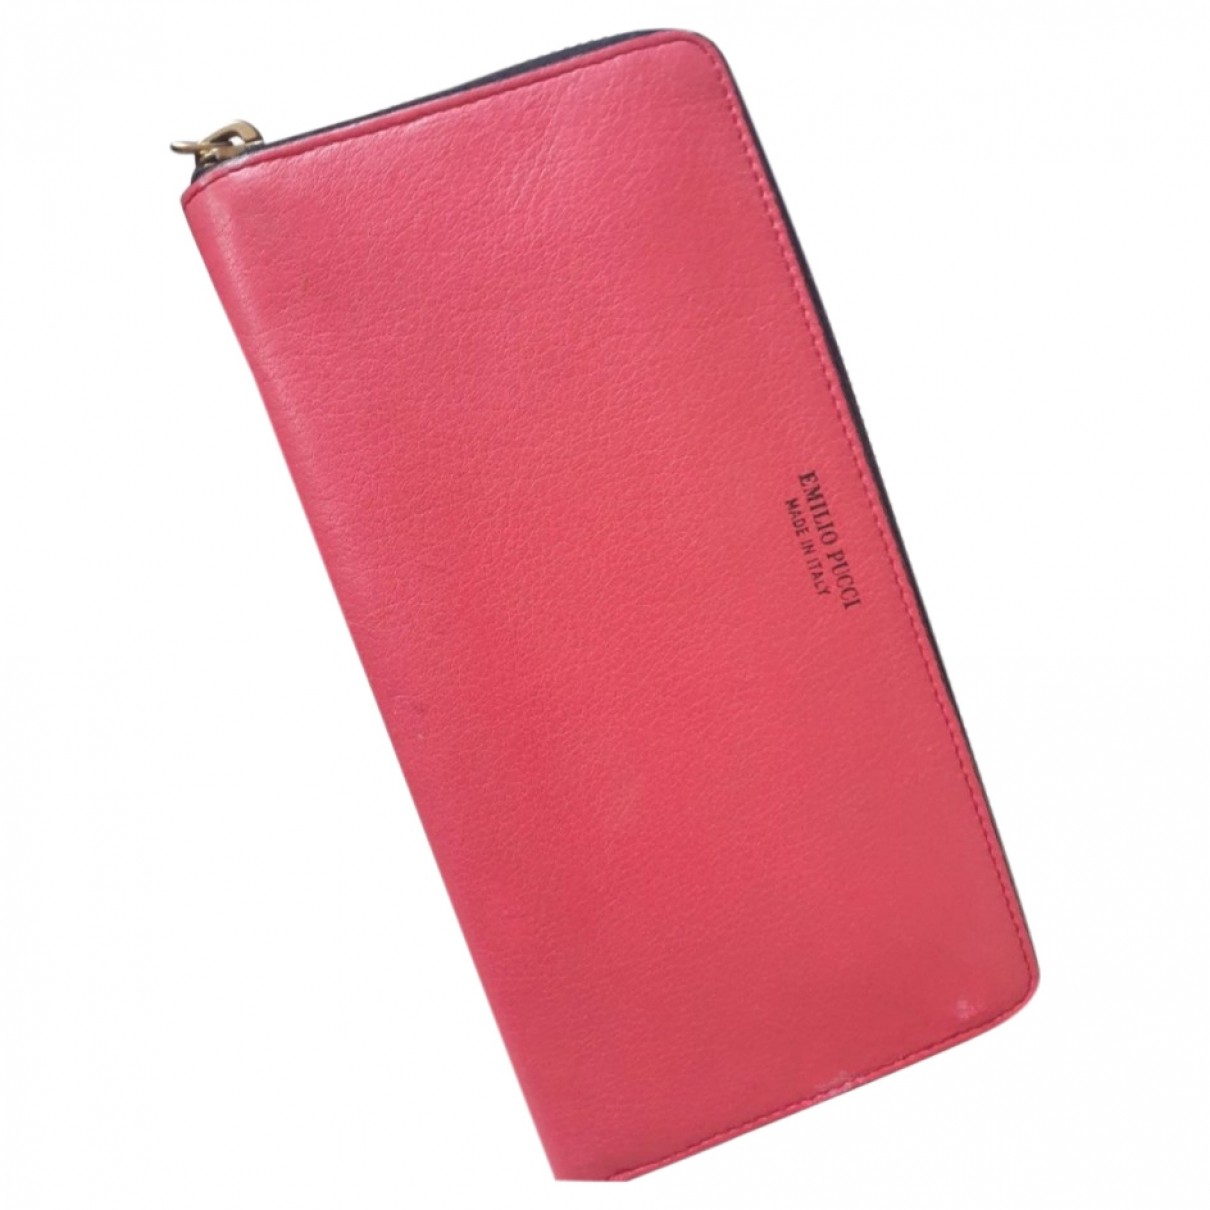 Emilio Pucci \N Pink Leather wallet for Women \N